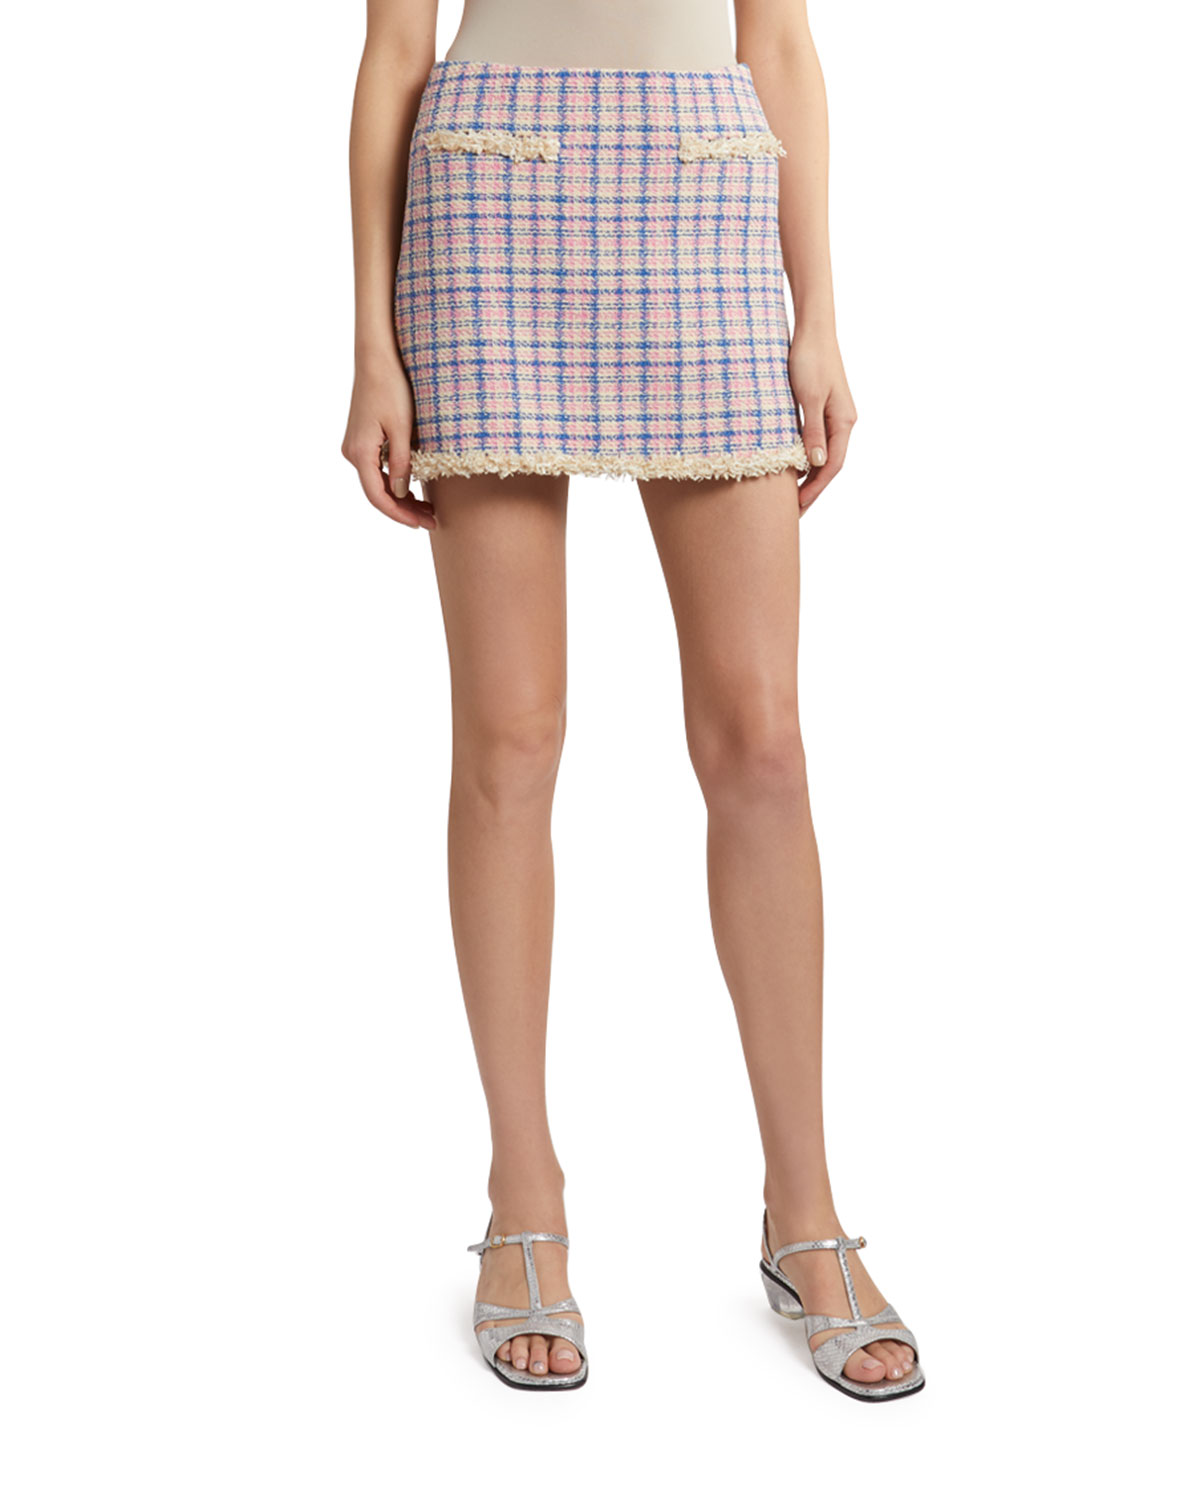 The Marc Jacobs The Tweed Skirt